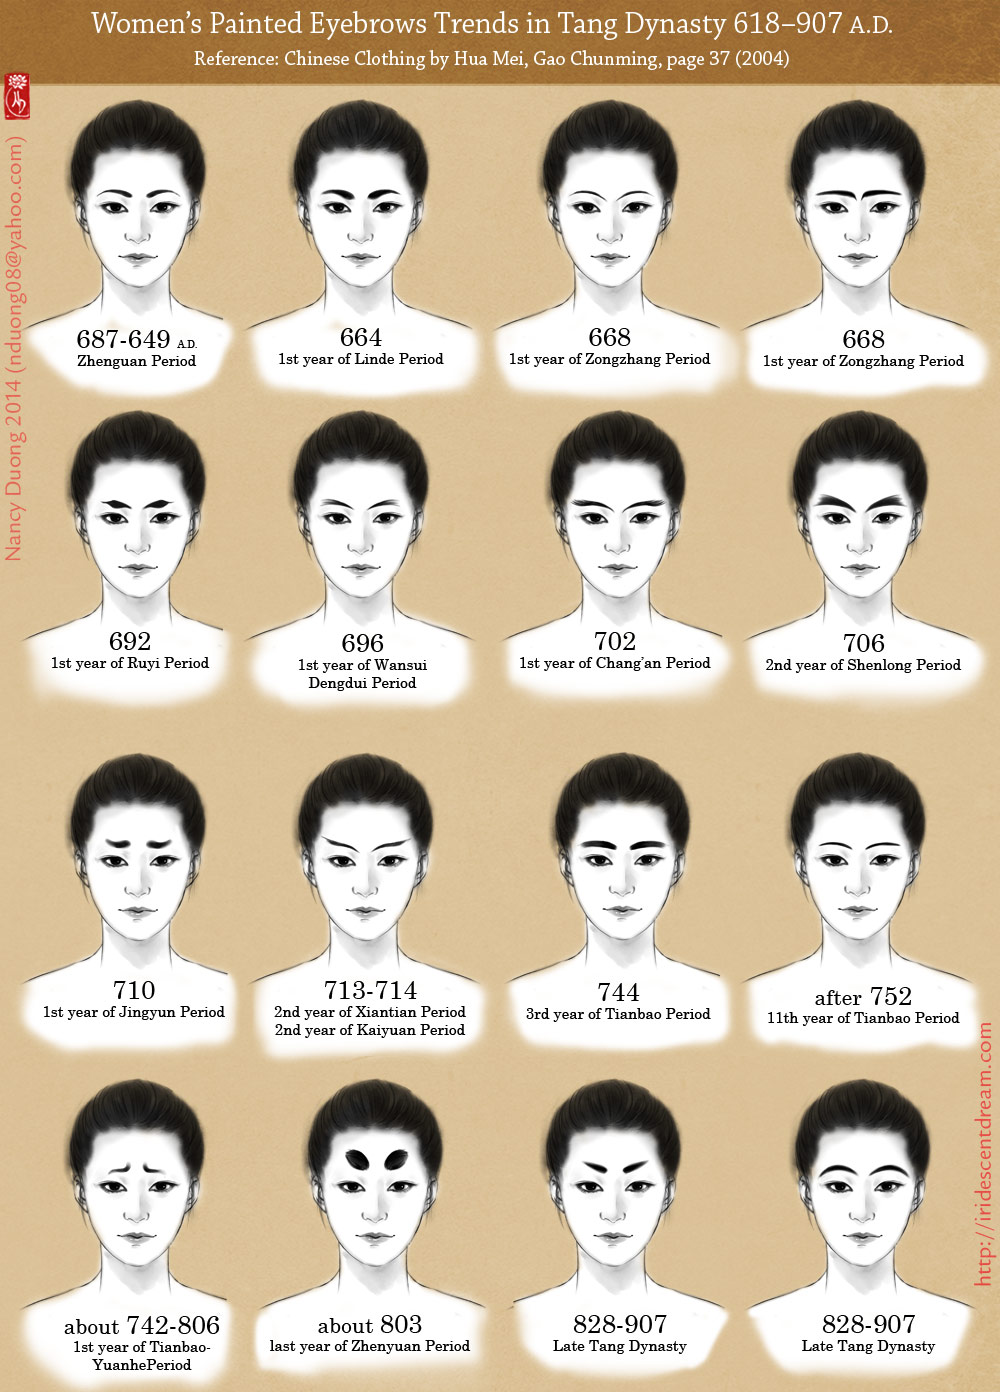 Painted Eyebrow Trends In Tang Dynasty By Lilsuika On